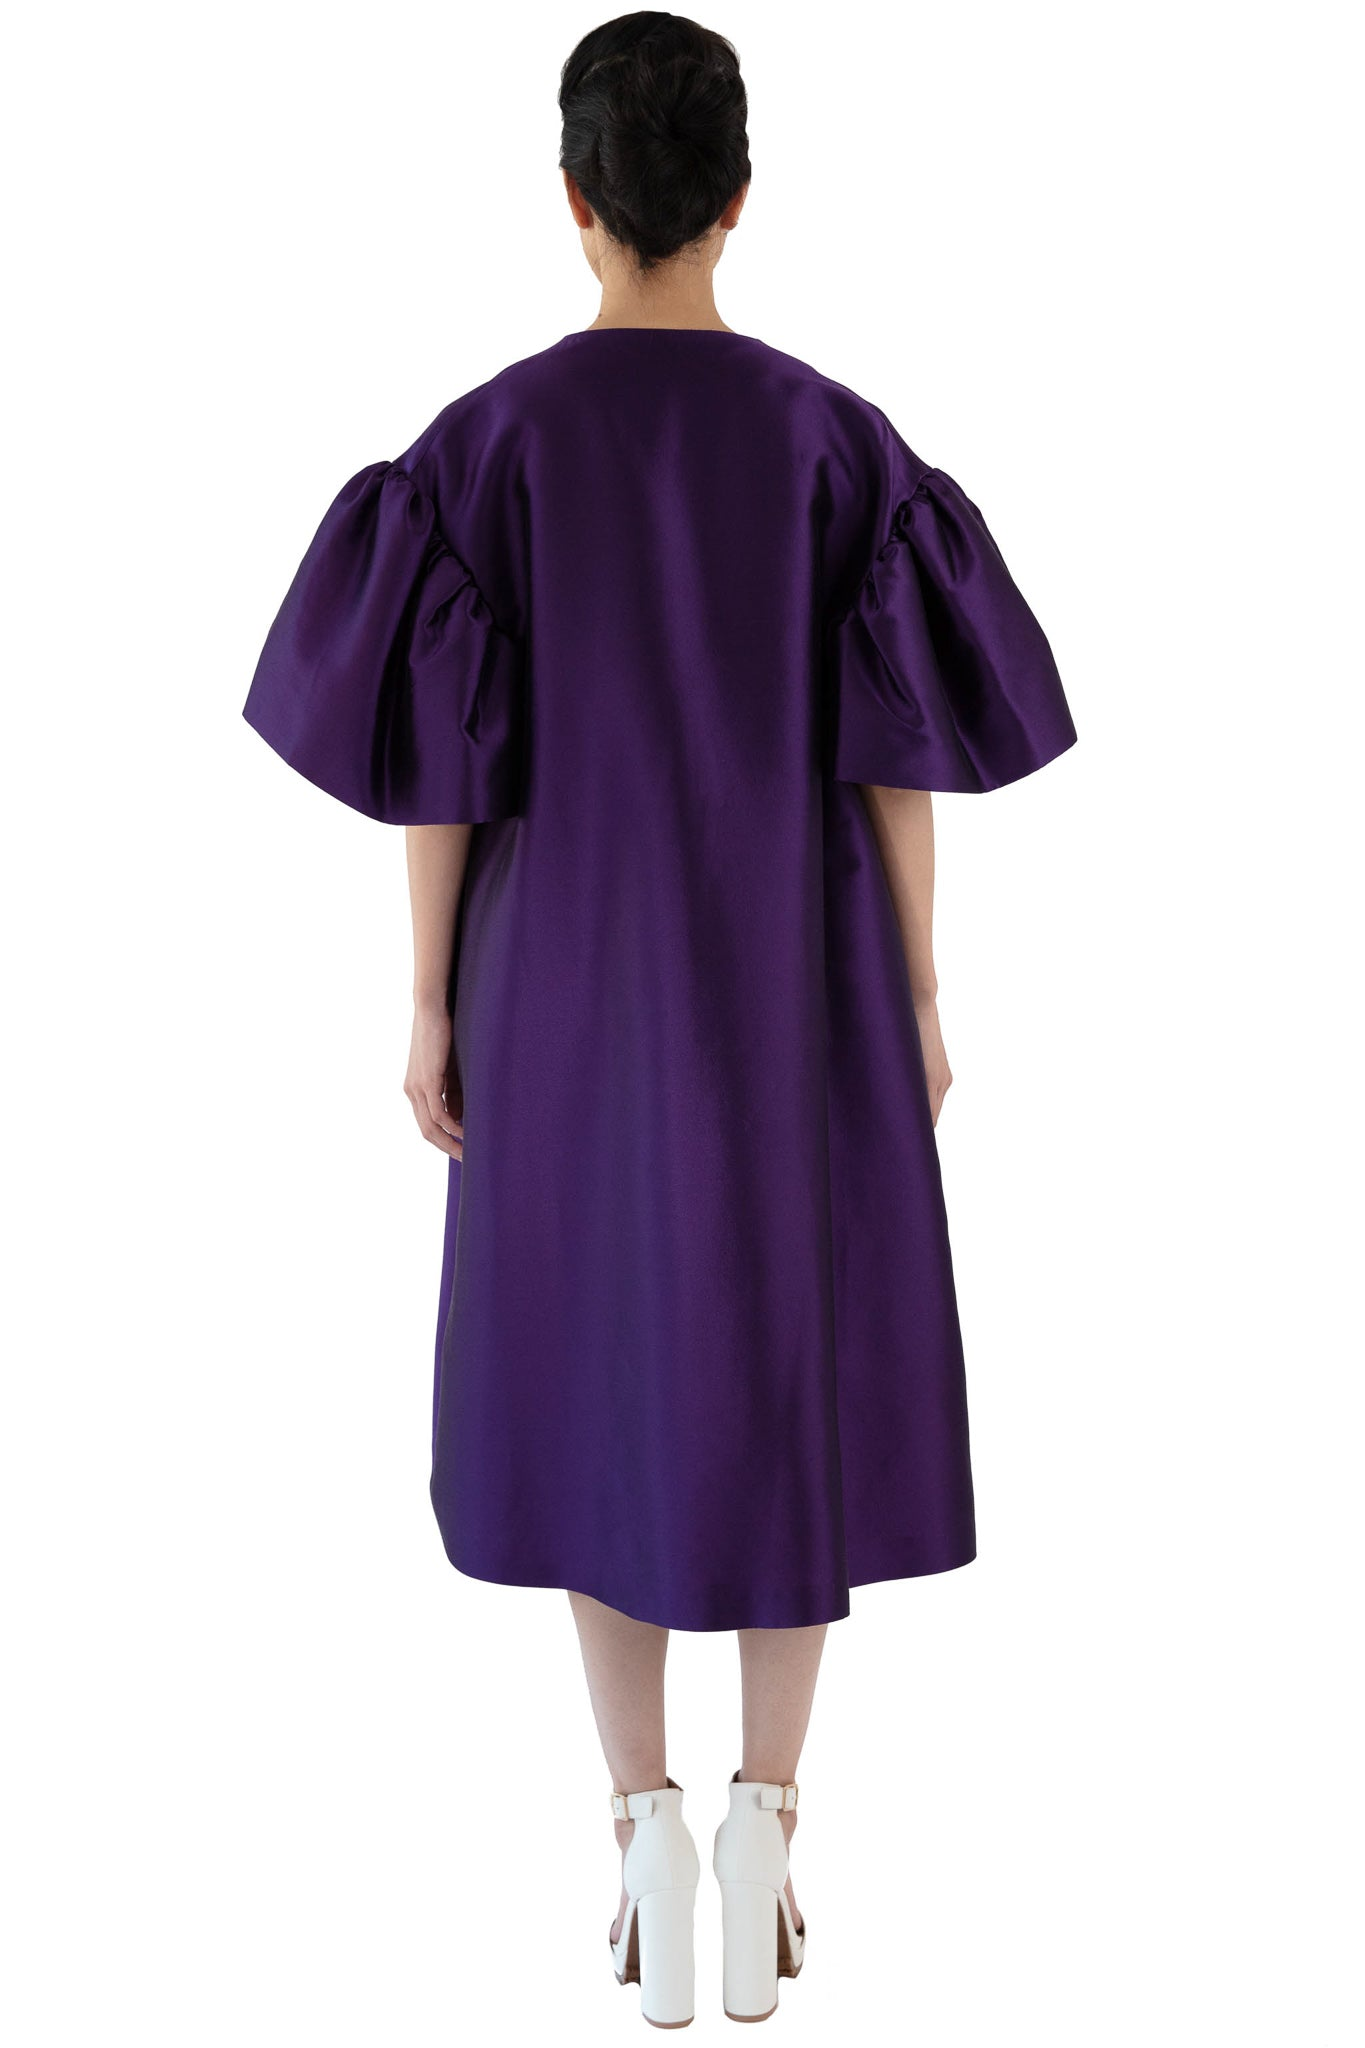 Back of women's purple opera coat